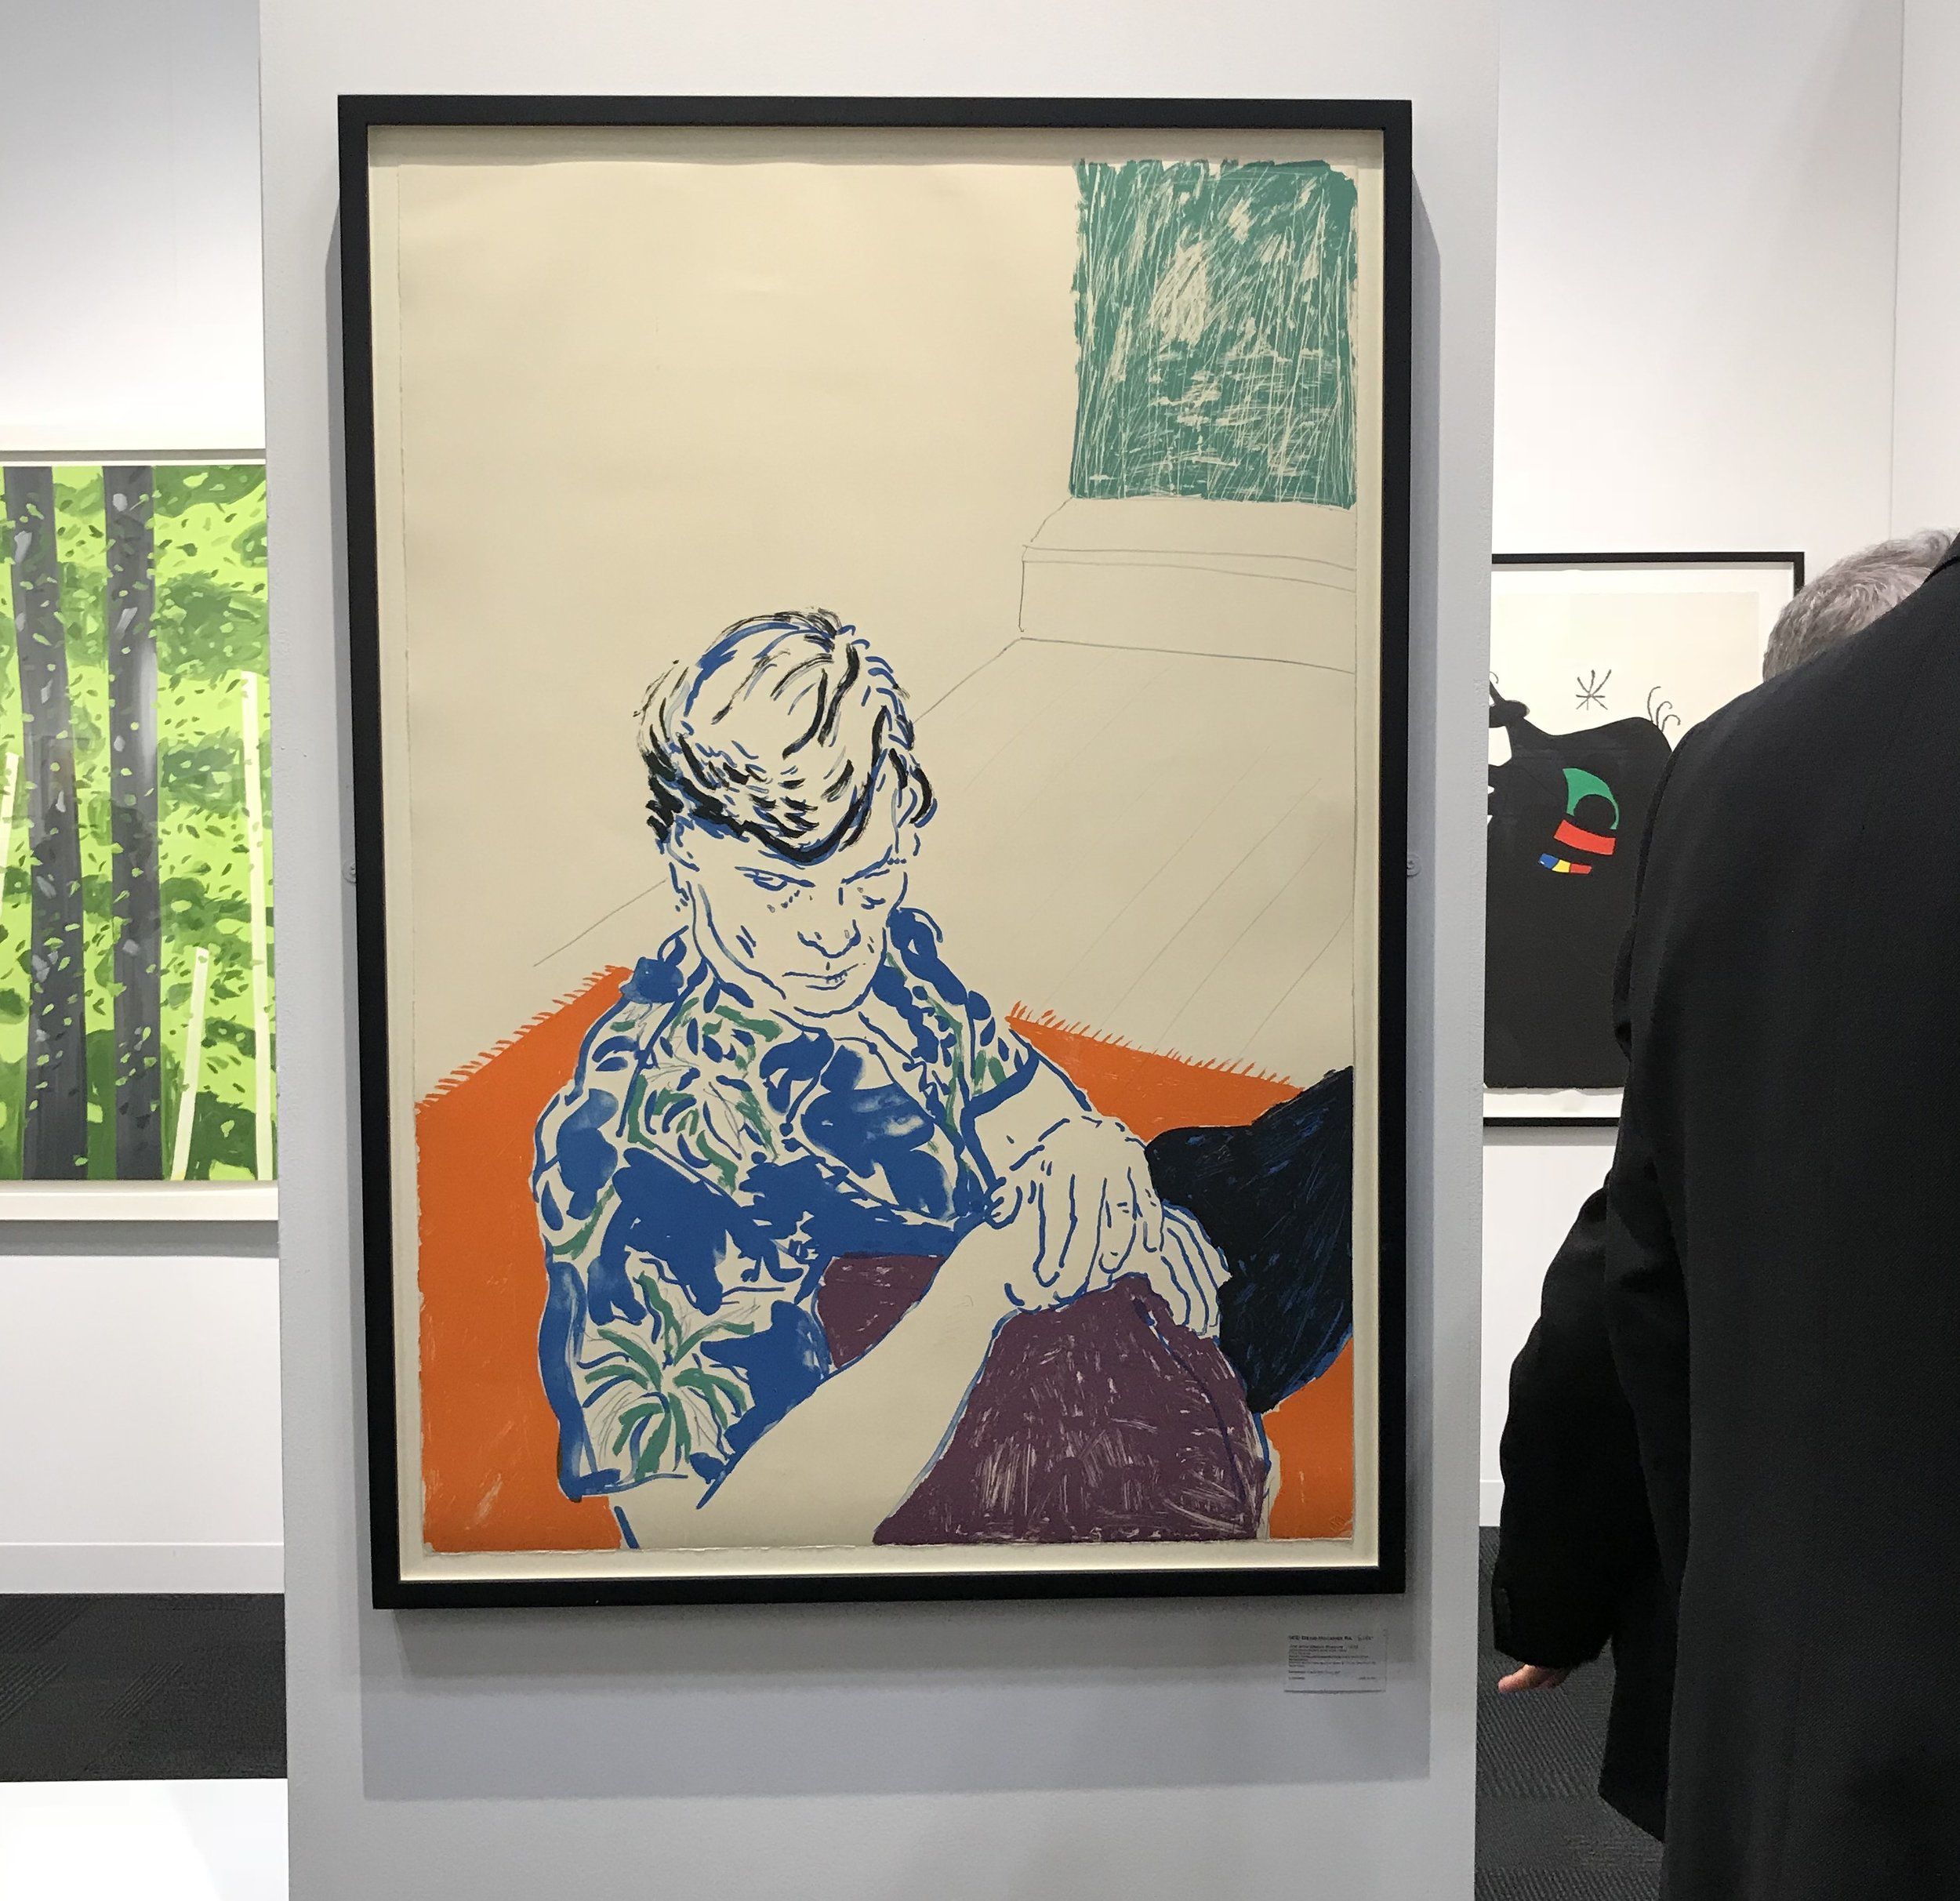 David Hockney exhibited by The Redfern Gallery